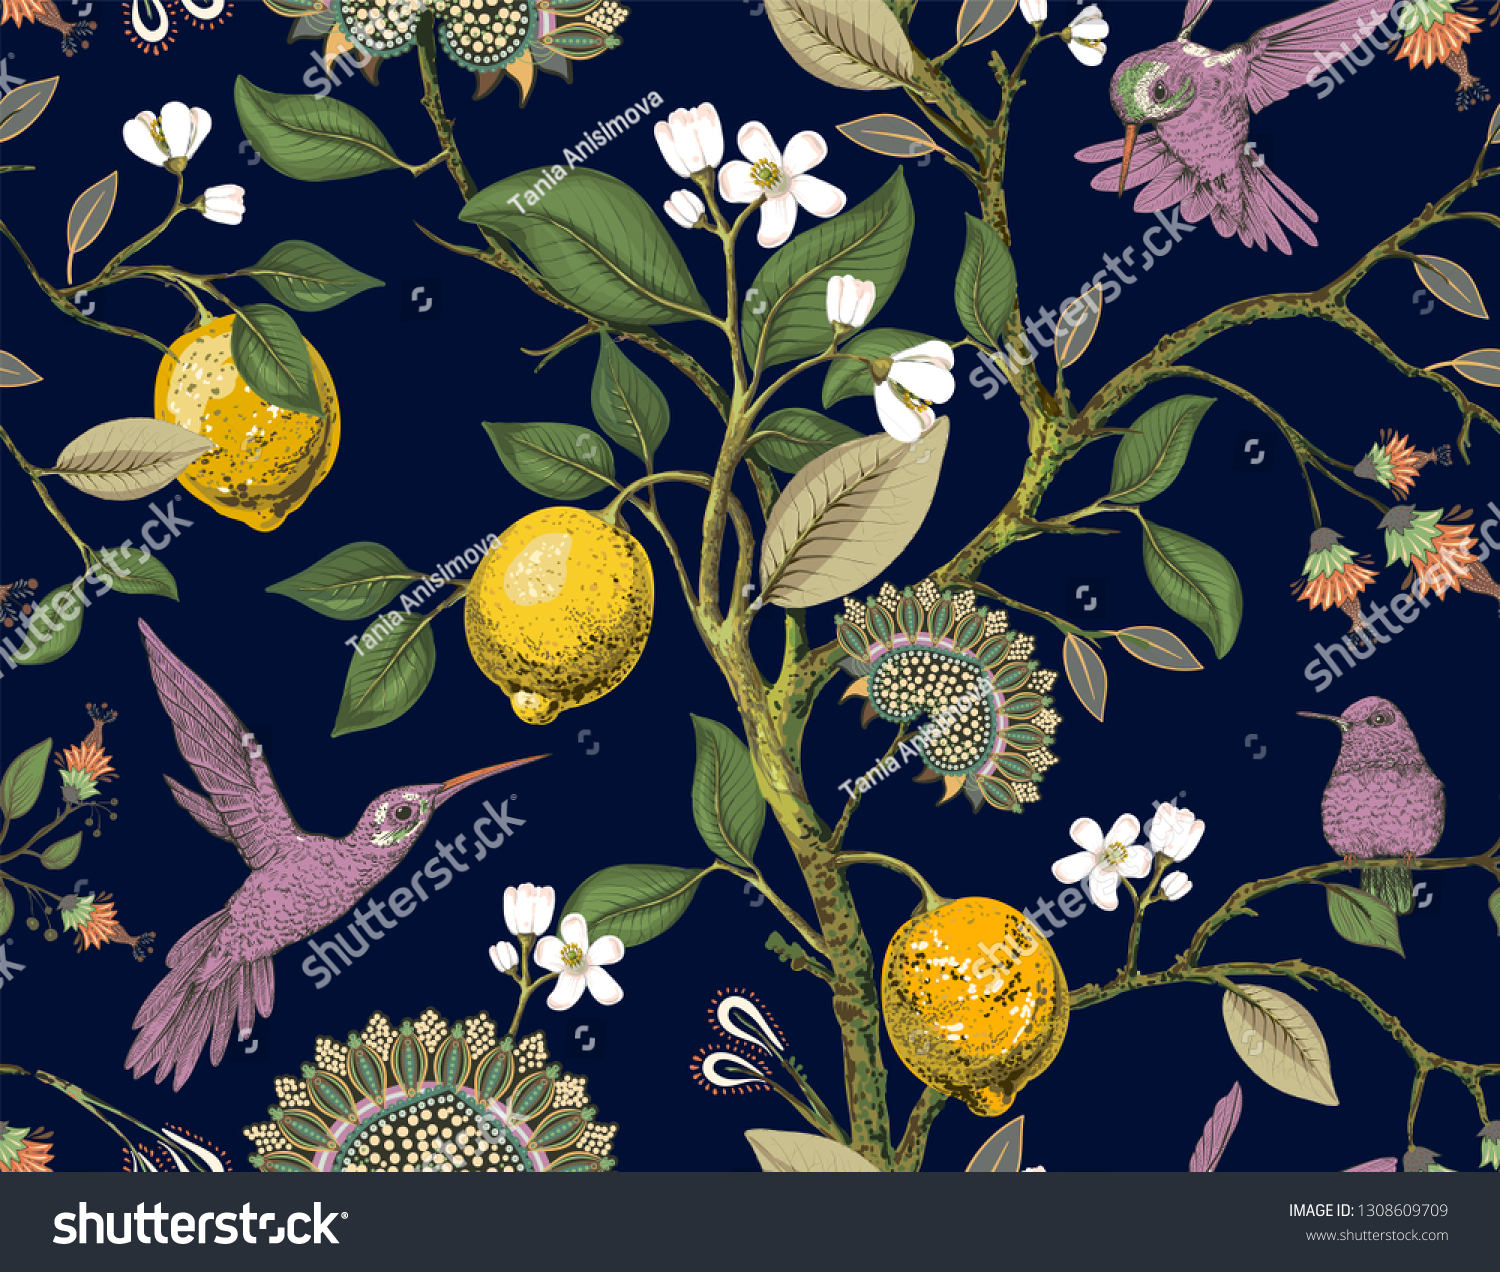 Floral Seamless Pattern Botanical Wallpaper Plants Stock